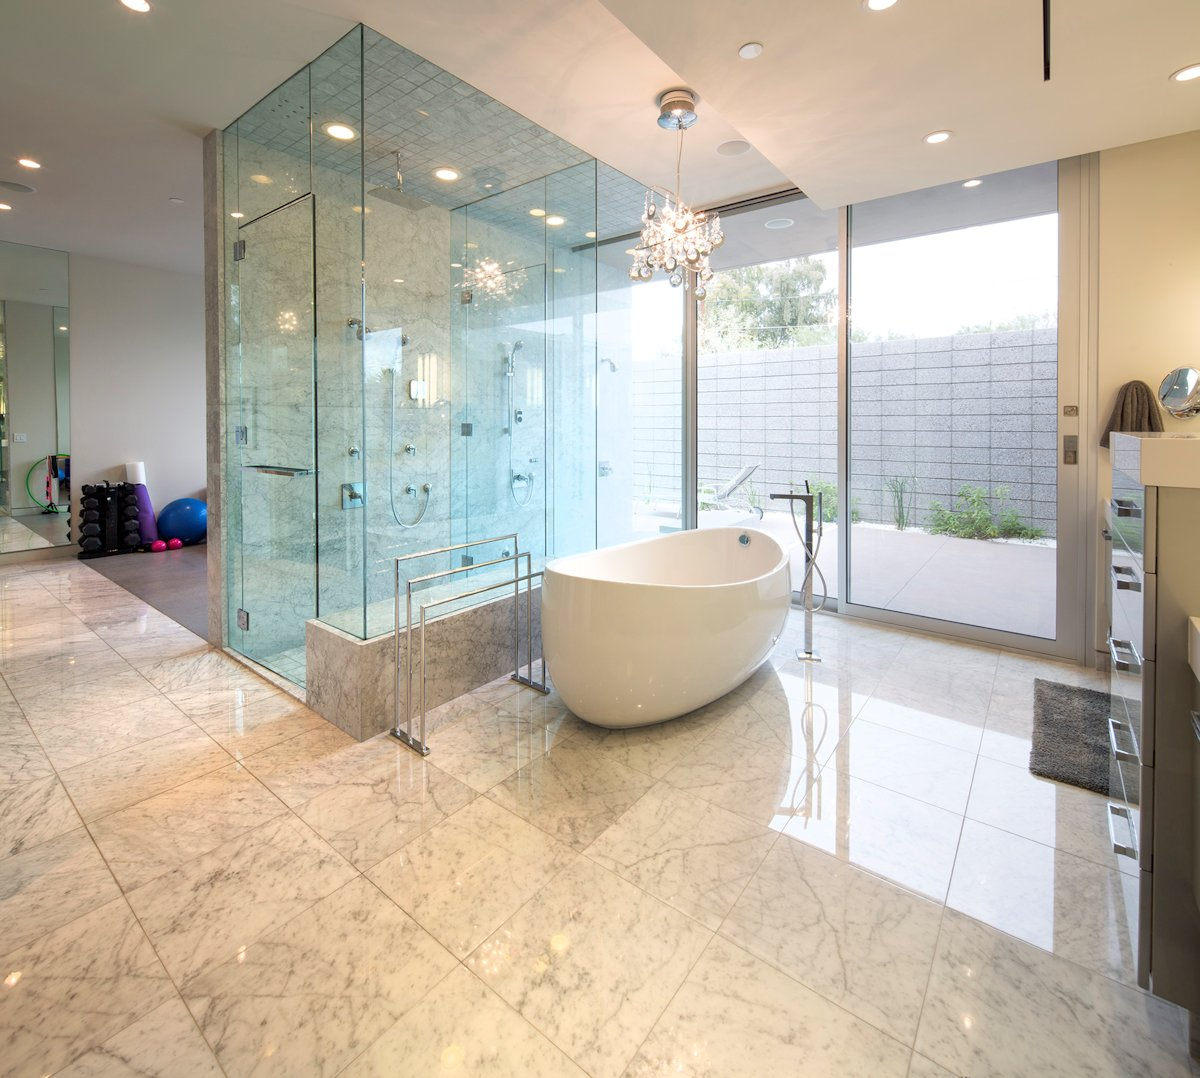 15 modern bathrooms with glass showers Bathroom designs with window in shower